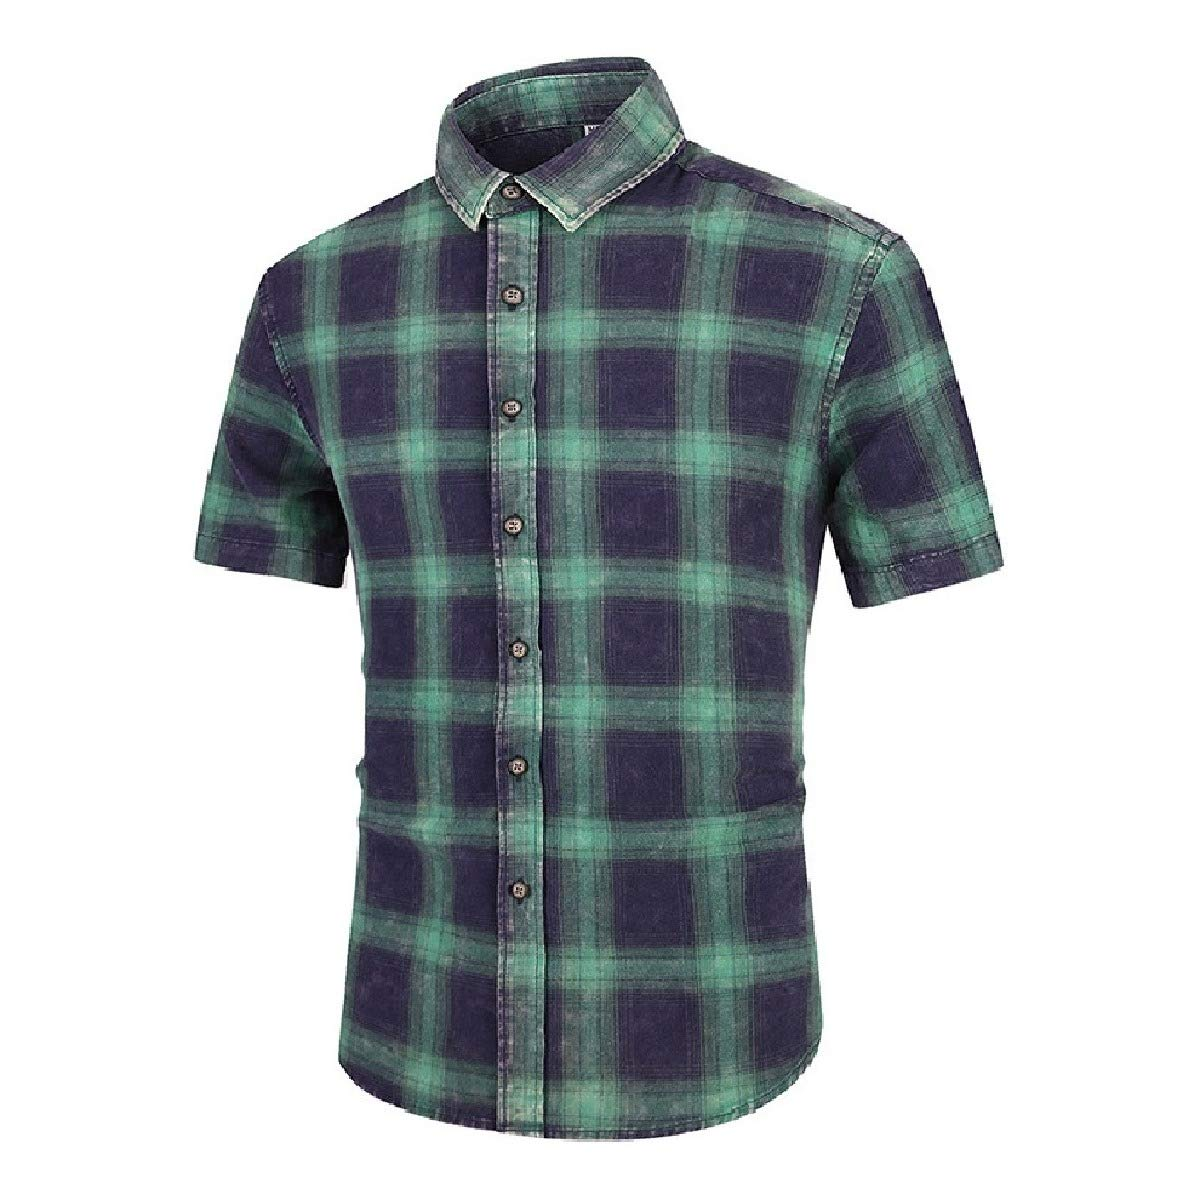 Sebaby Mens Short Sleeve Summer Plaid Basic Cotton Casual Leisure Work Shirt